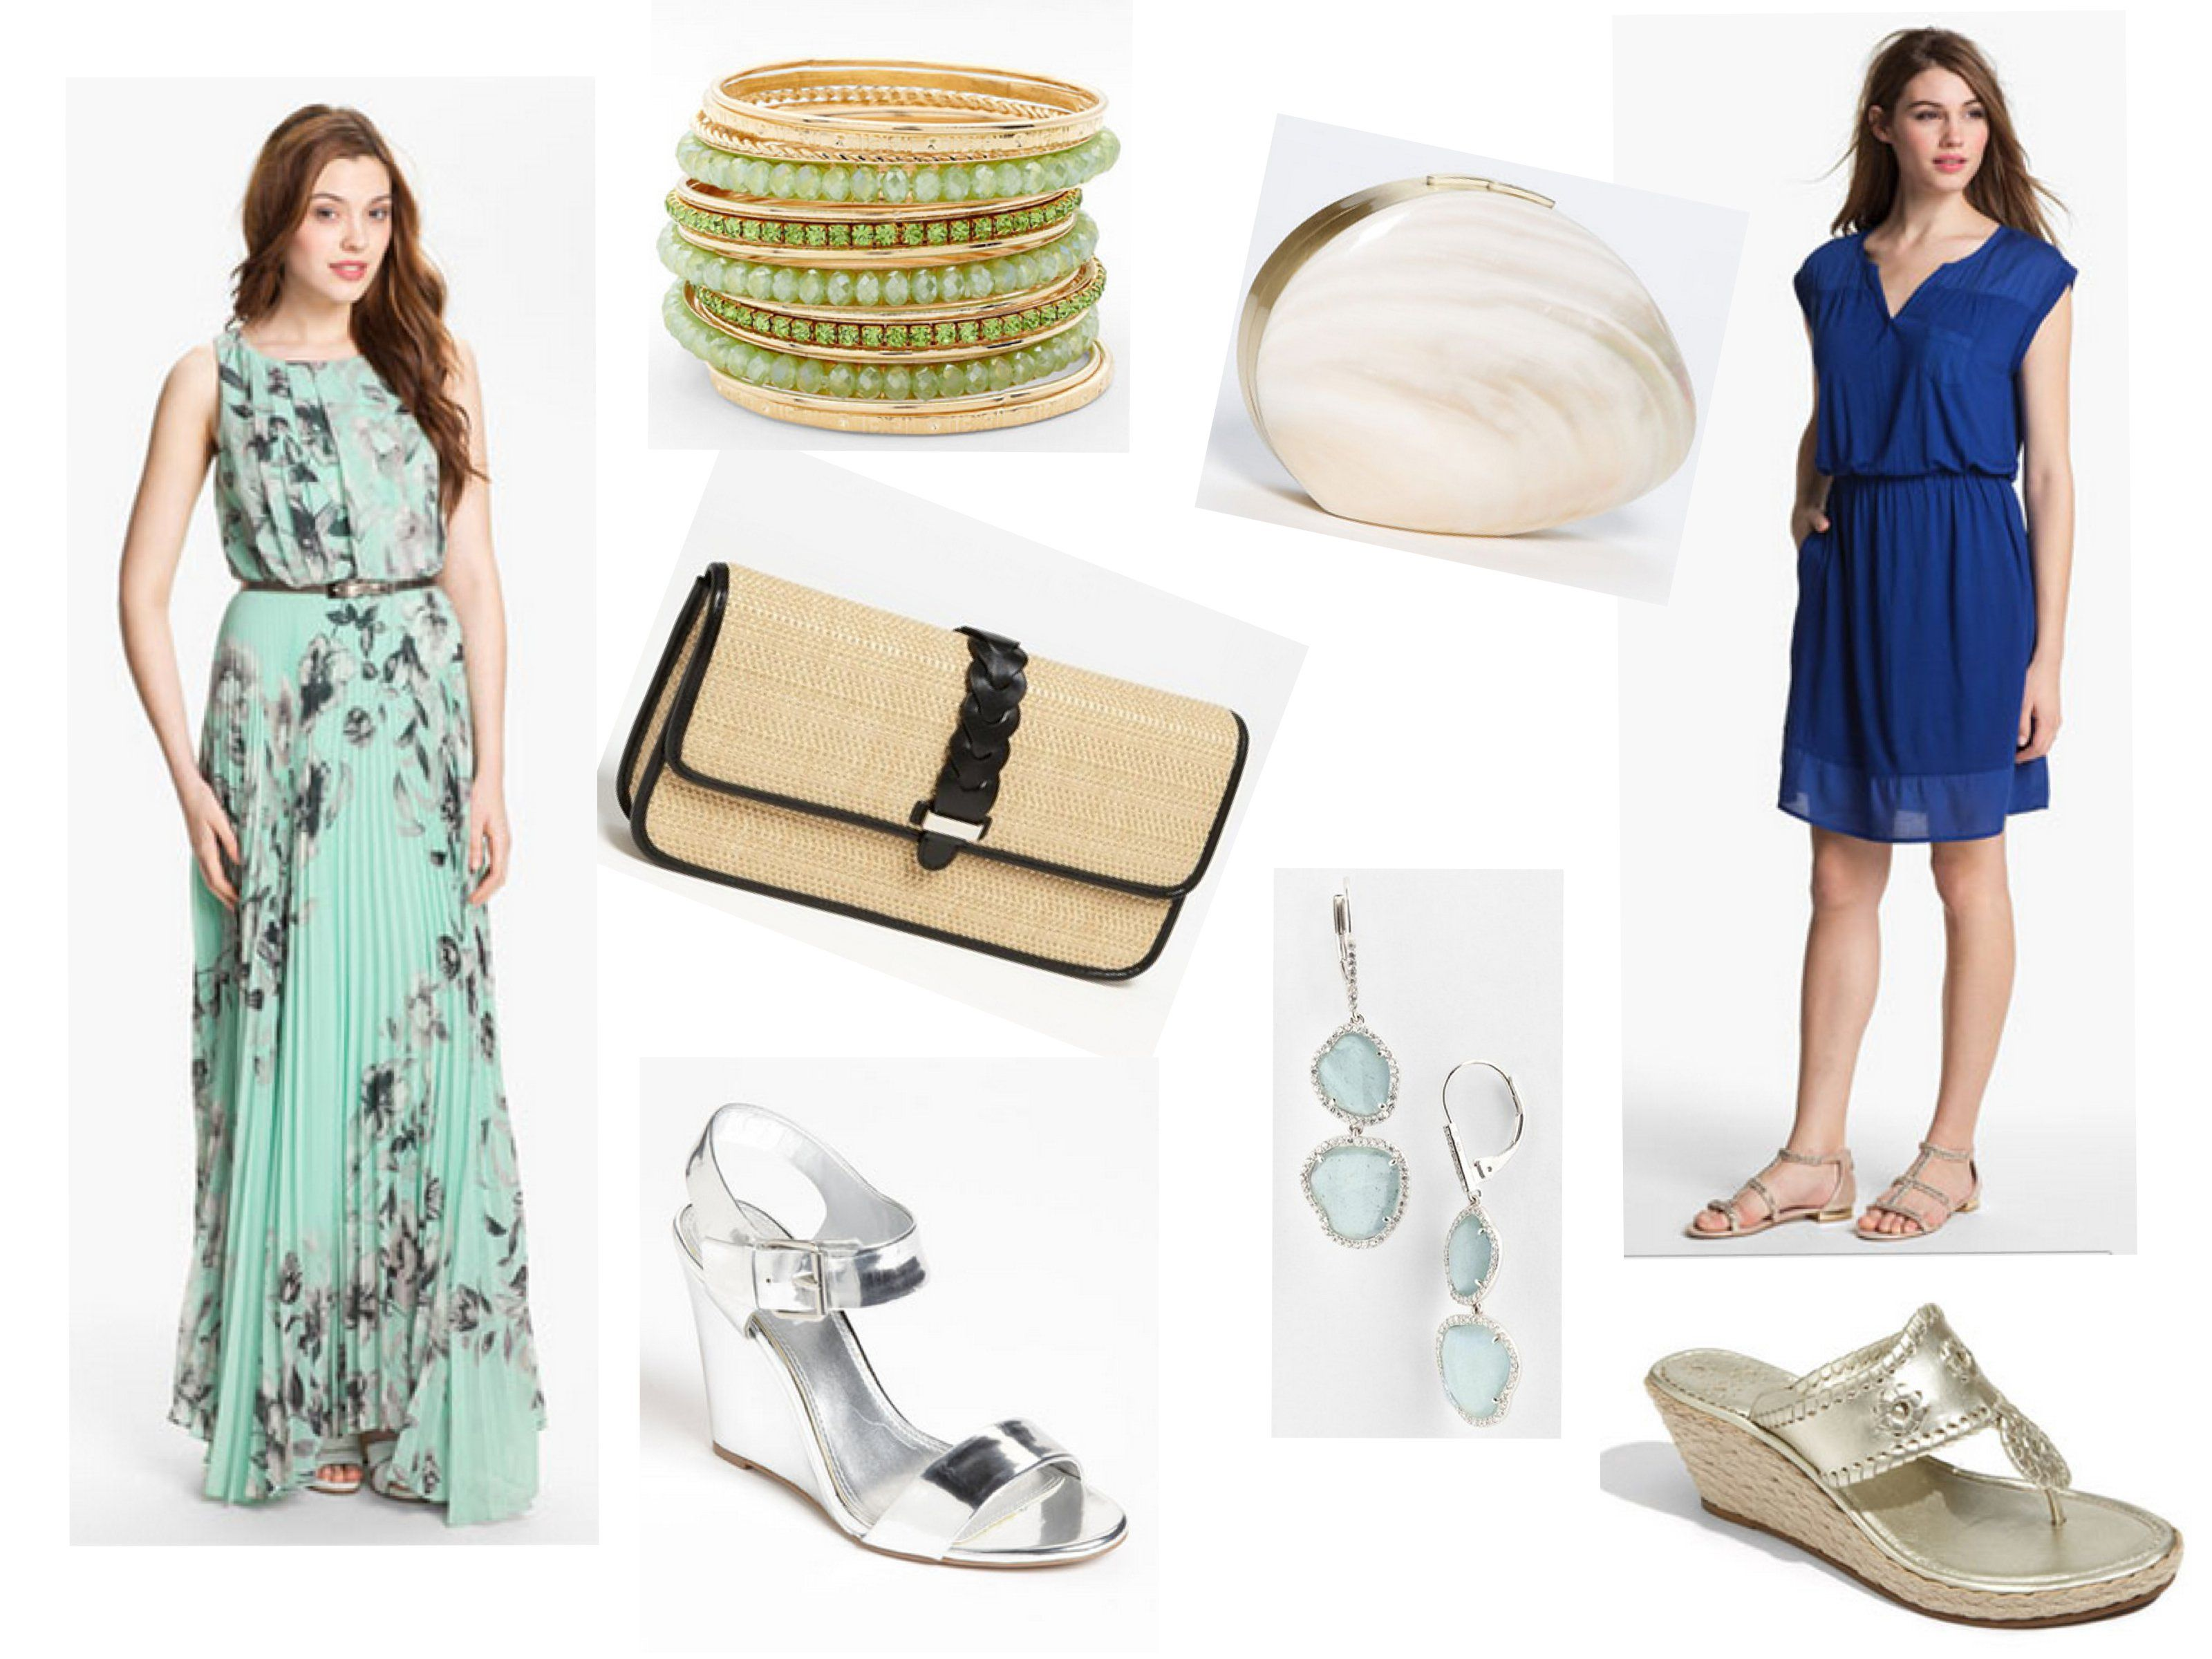 6 Outfits To Wear To A Backyard Style Wedding Rustic Wedding Chic Wedding Attire Guest Backyard Wedding Dresses Wedding Guest Outfit